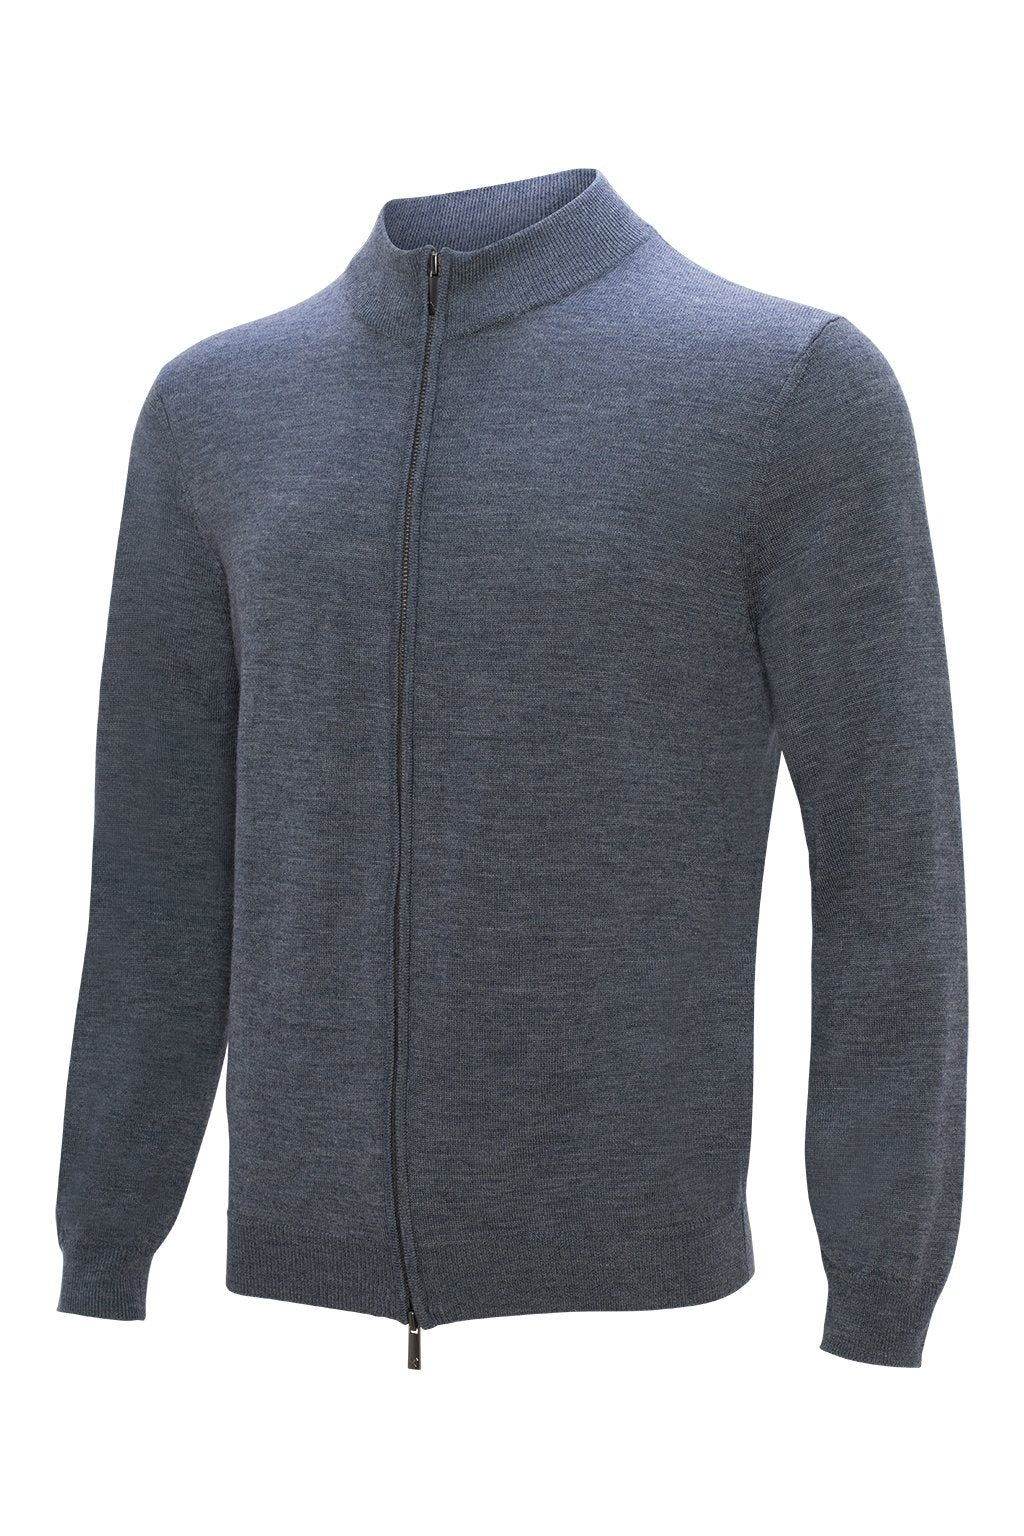 Gray Hennessy Zip Front Wool Knit Sweater - Sweaters - Cardinal of Canada-US-Gray Hennessy Zip Front Wool Knit Sweater